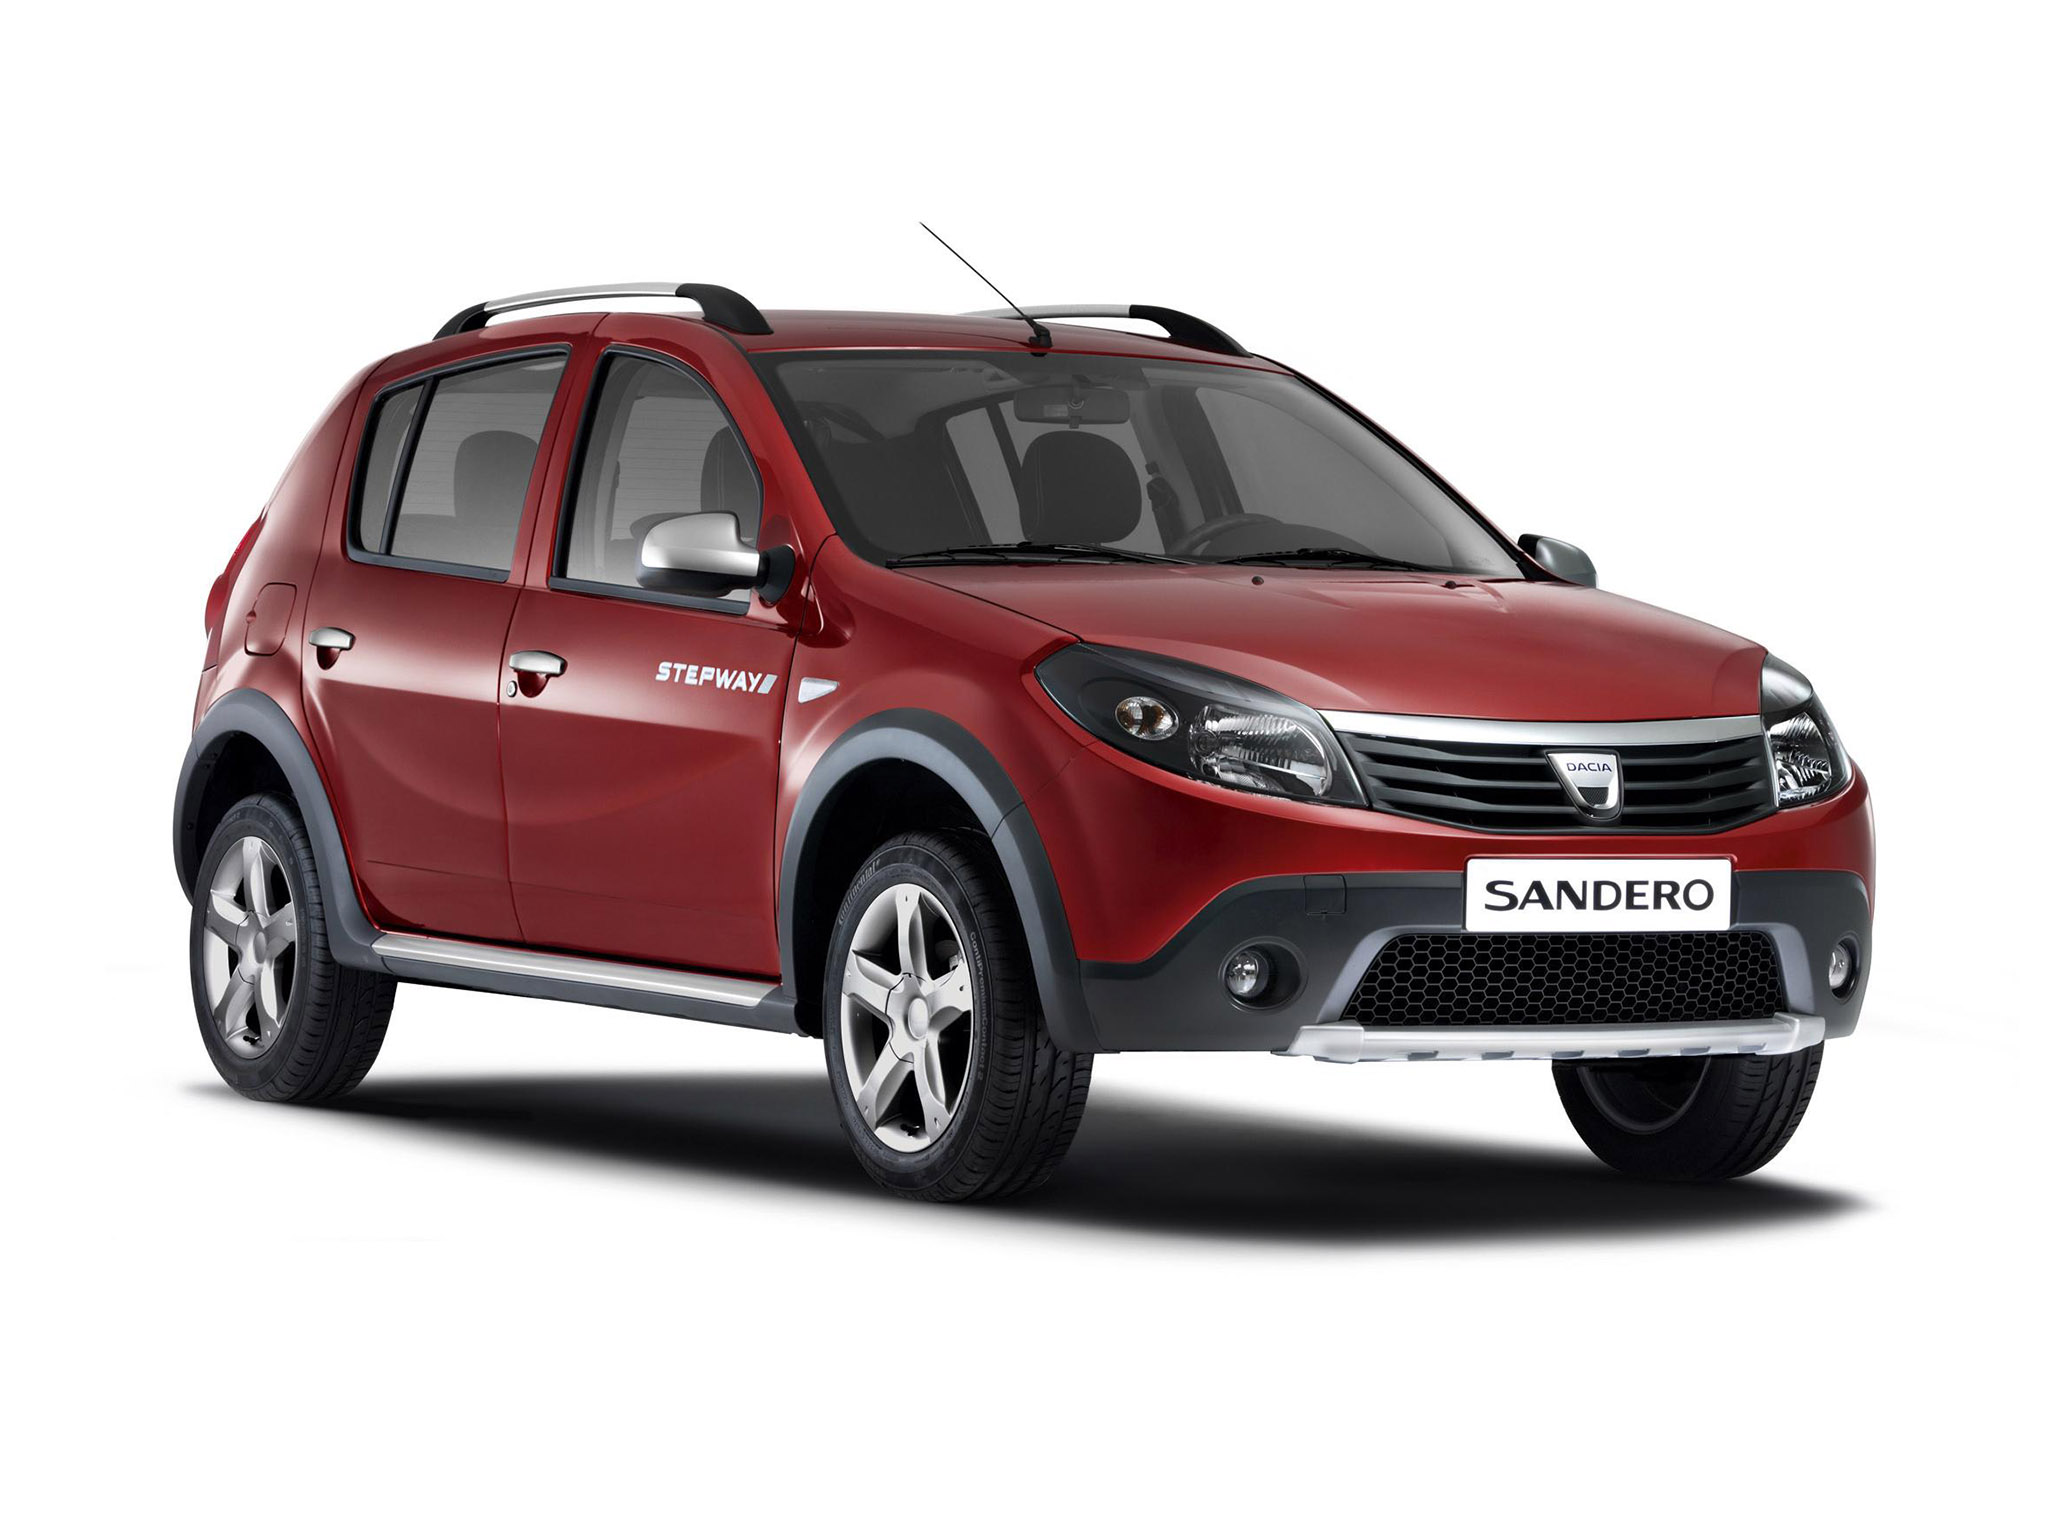 dacia sandero stepway 2009 dacia sandero stepway 2009 photo 20 car in pictures car photo gallery. Black Bedroom Furniture Sets. Home Design Ideas